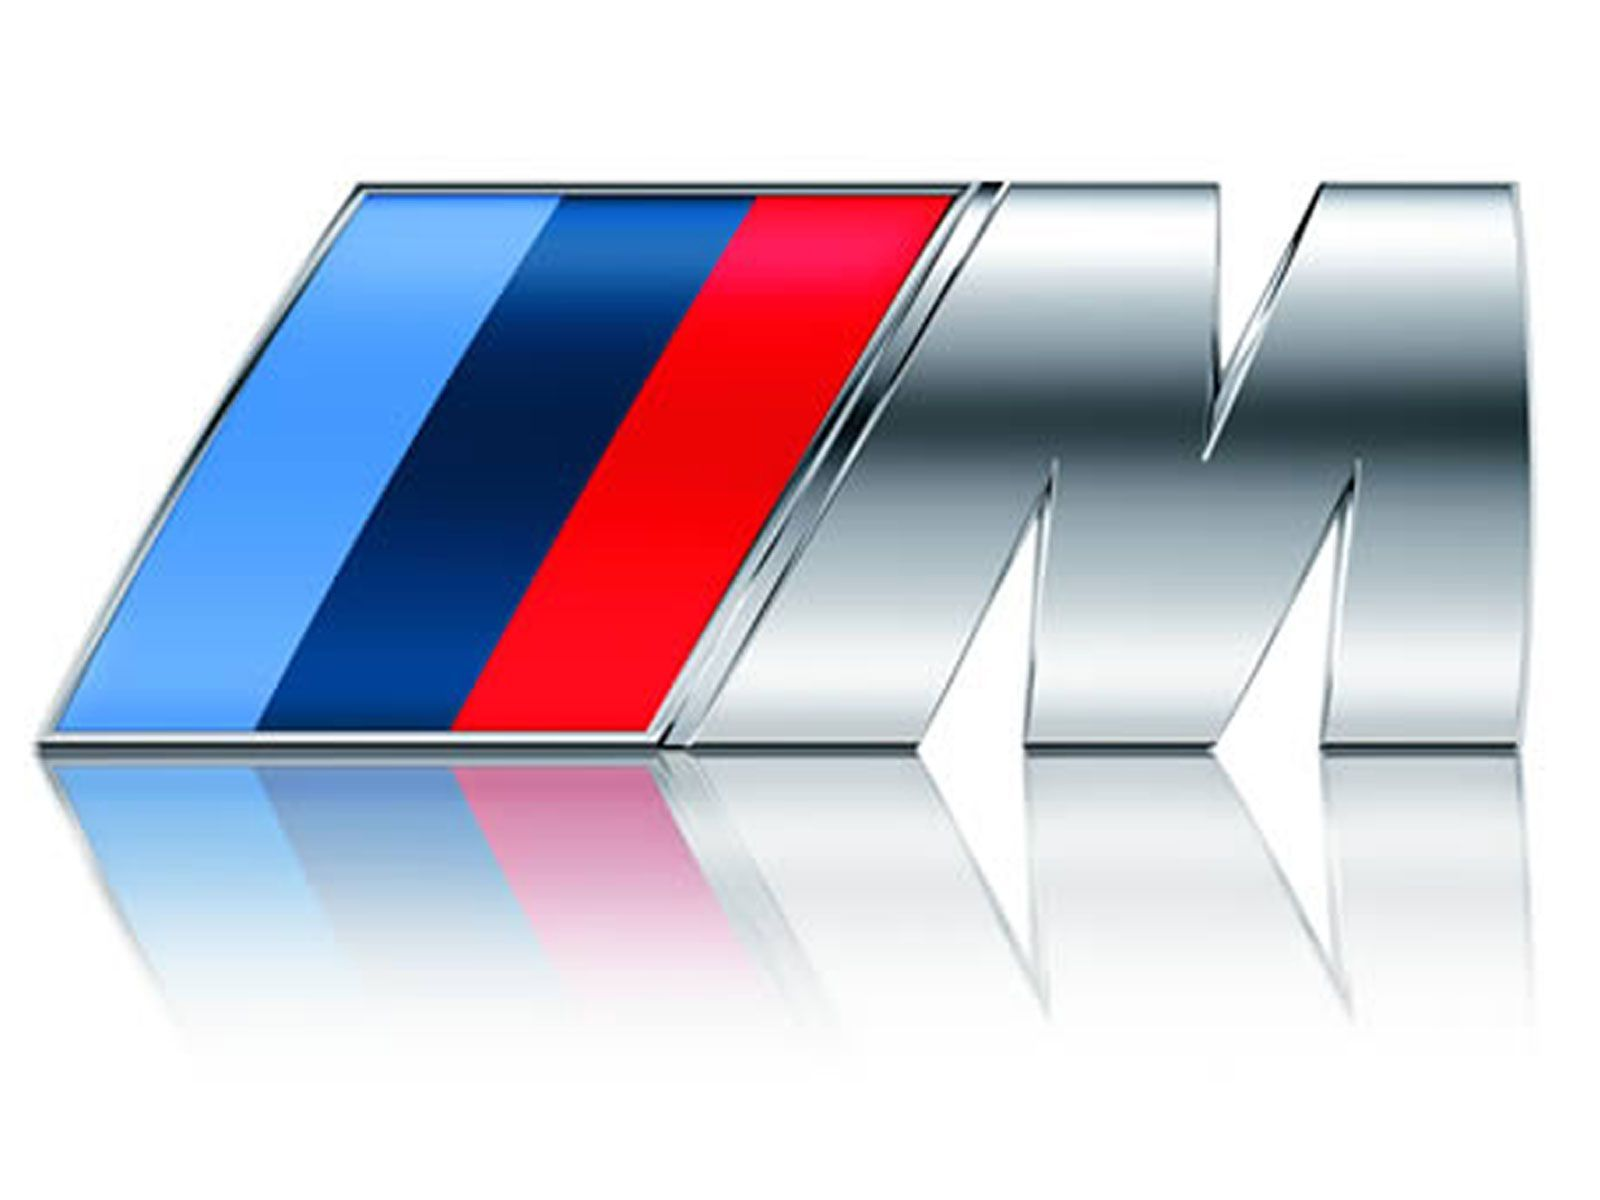 Bmw says the m division would like to develop its own car bmw m tech emblem badge original till bilens bagageluckan bmw m tech performance emblem passar alla bmw buycottarizona Gallery